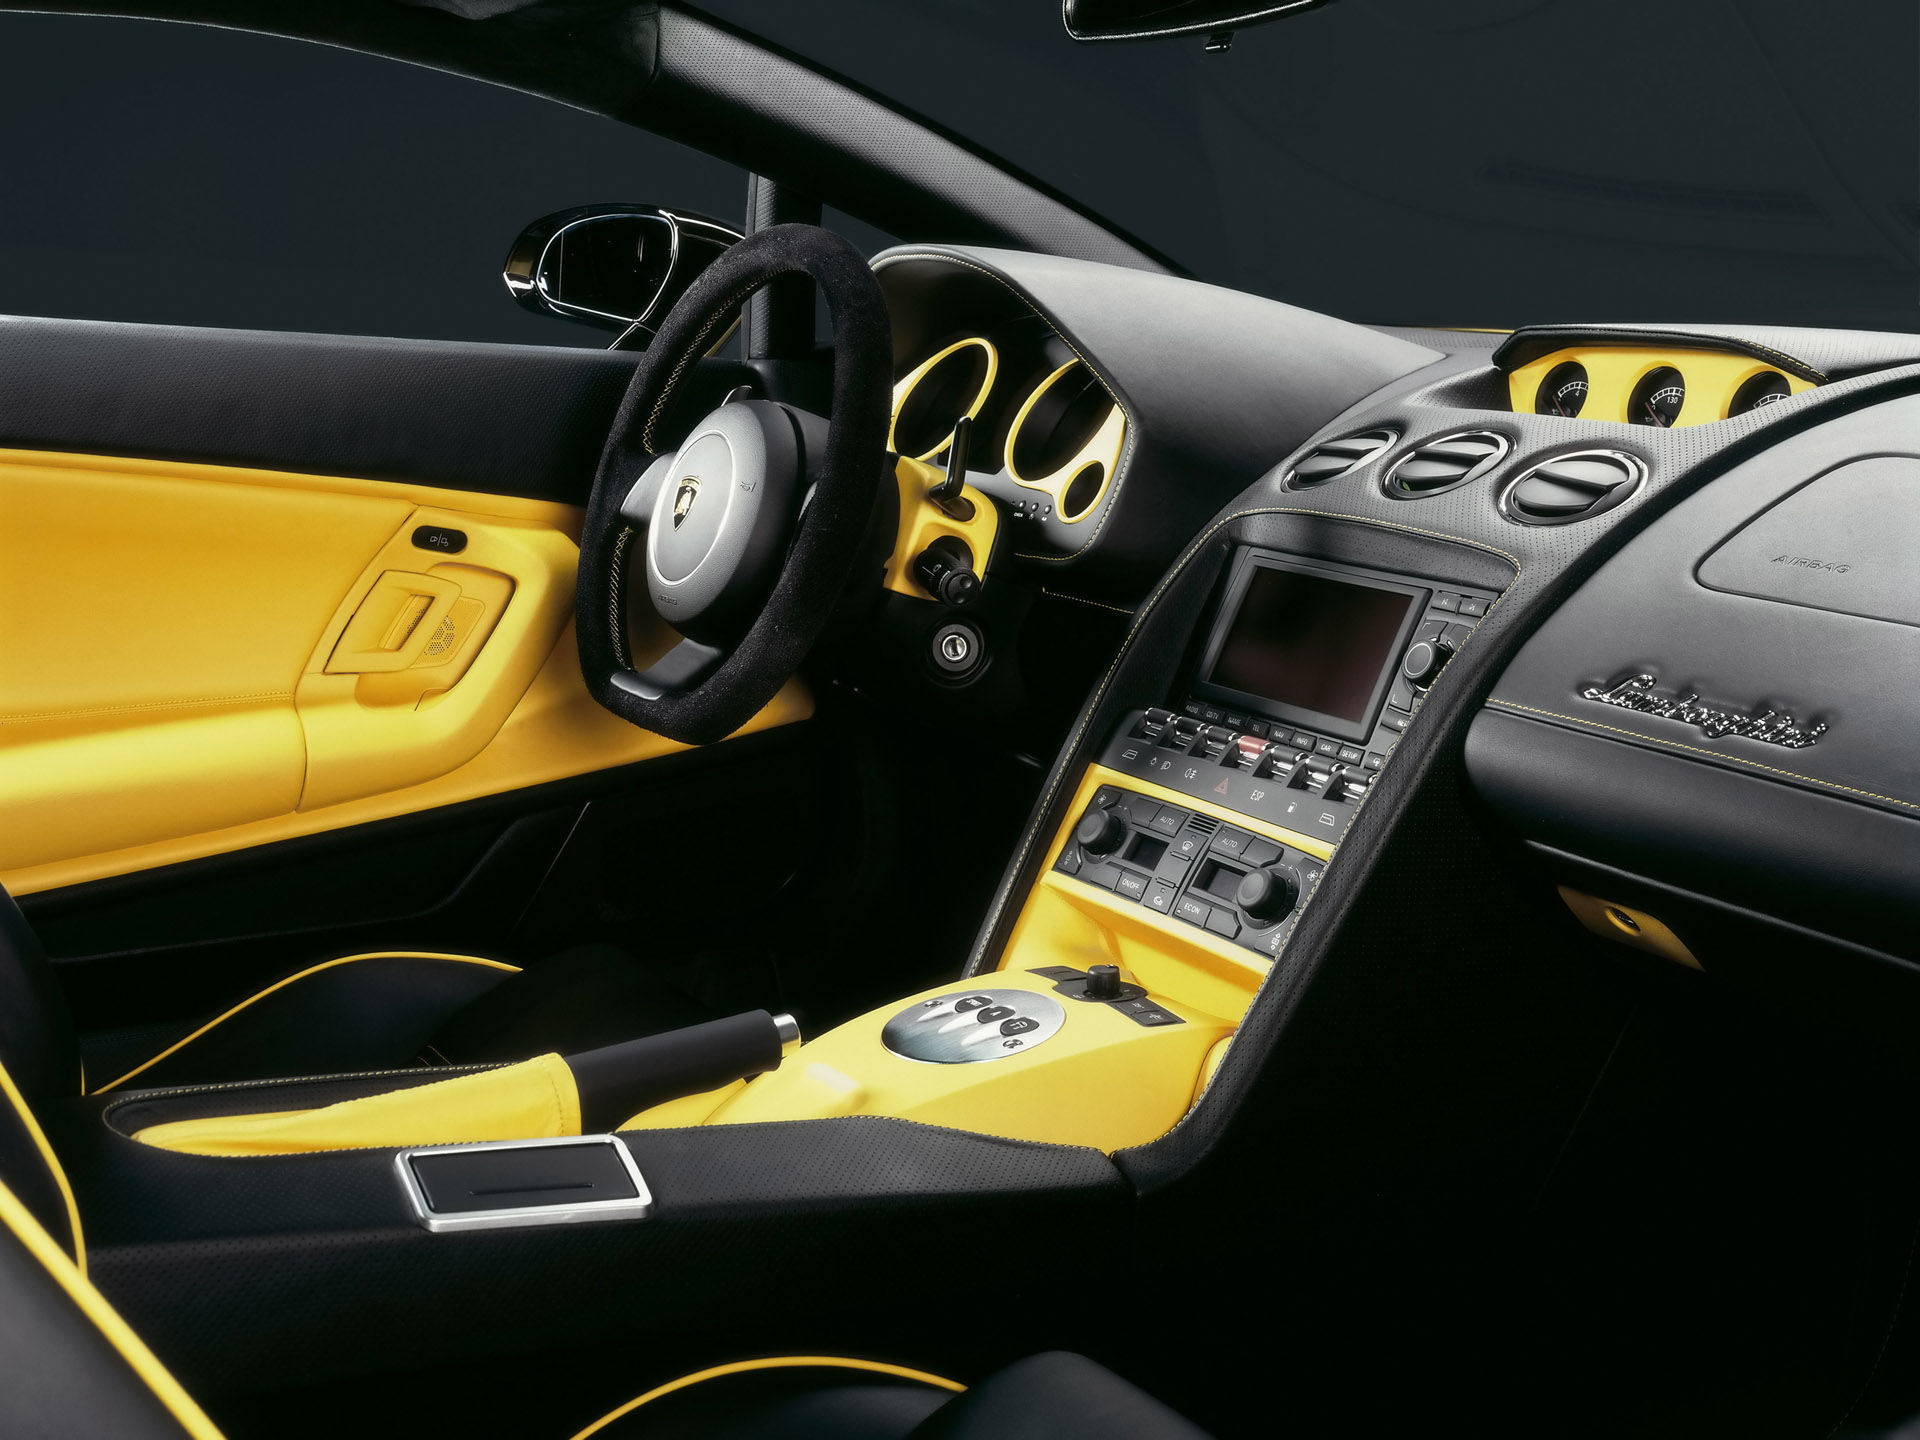 Awesome-Lamborghini-Gallardo-Interior-Picture-wallpaper-wp5004863